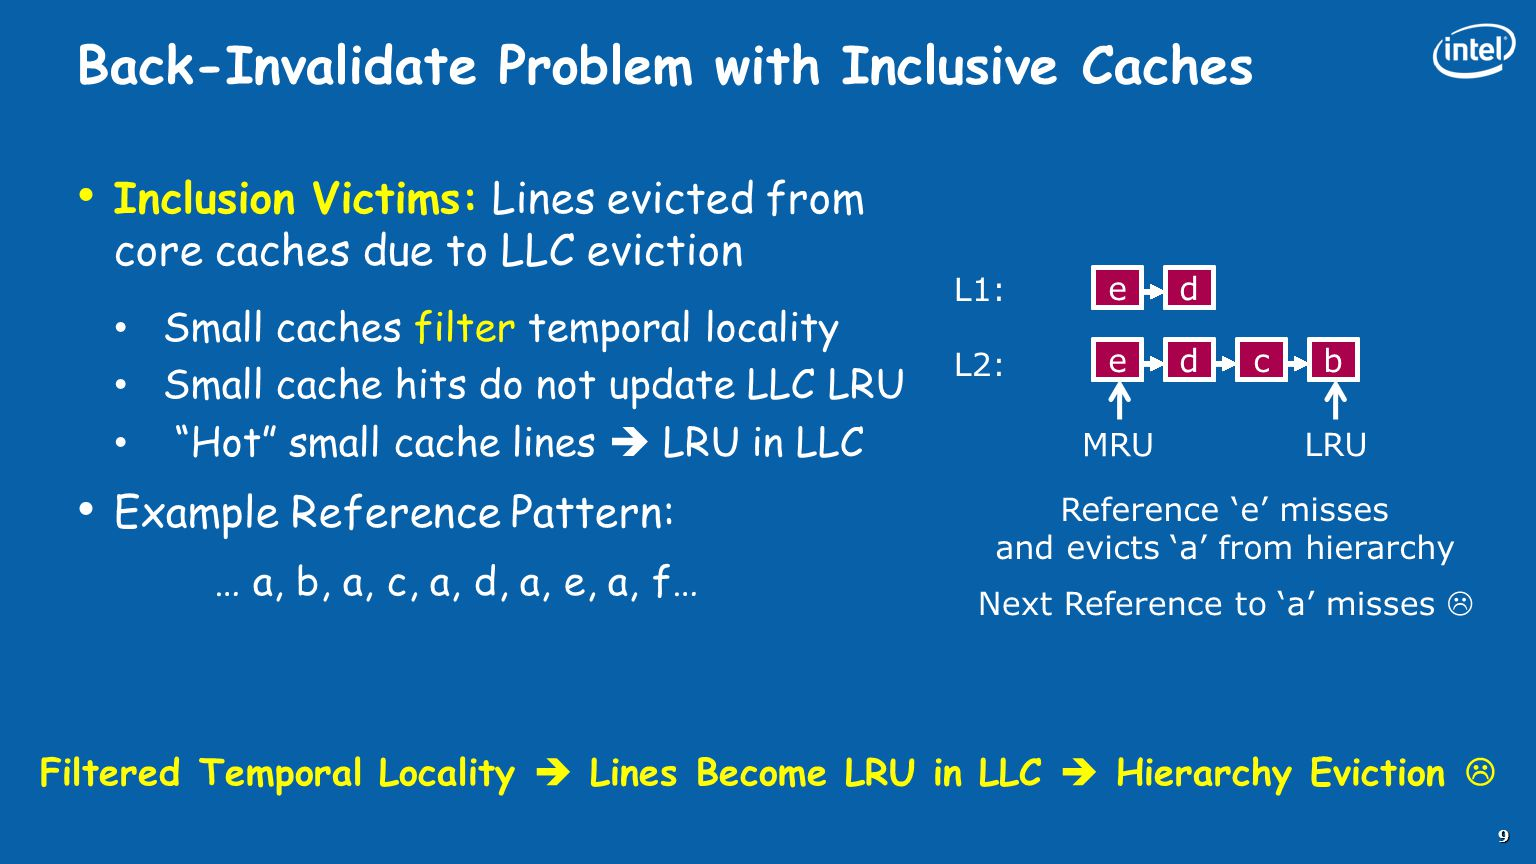 Query Based Selection (QBS) Main Idea: Replace lines that are NOT resident in core caches Query Based Selection (QBS): LLC sends back-inval request Core rejects back-inval if line is resident in core caches 20 L1 L2 L3 Back-Invalidate Request Miss Flow edcb a MRU LRU REJECT Memory